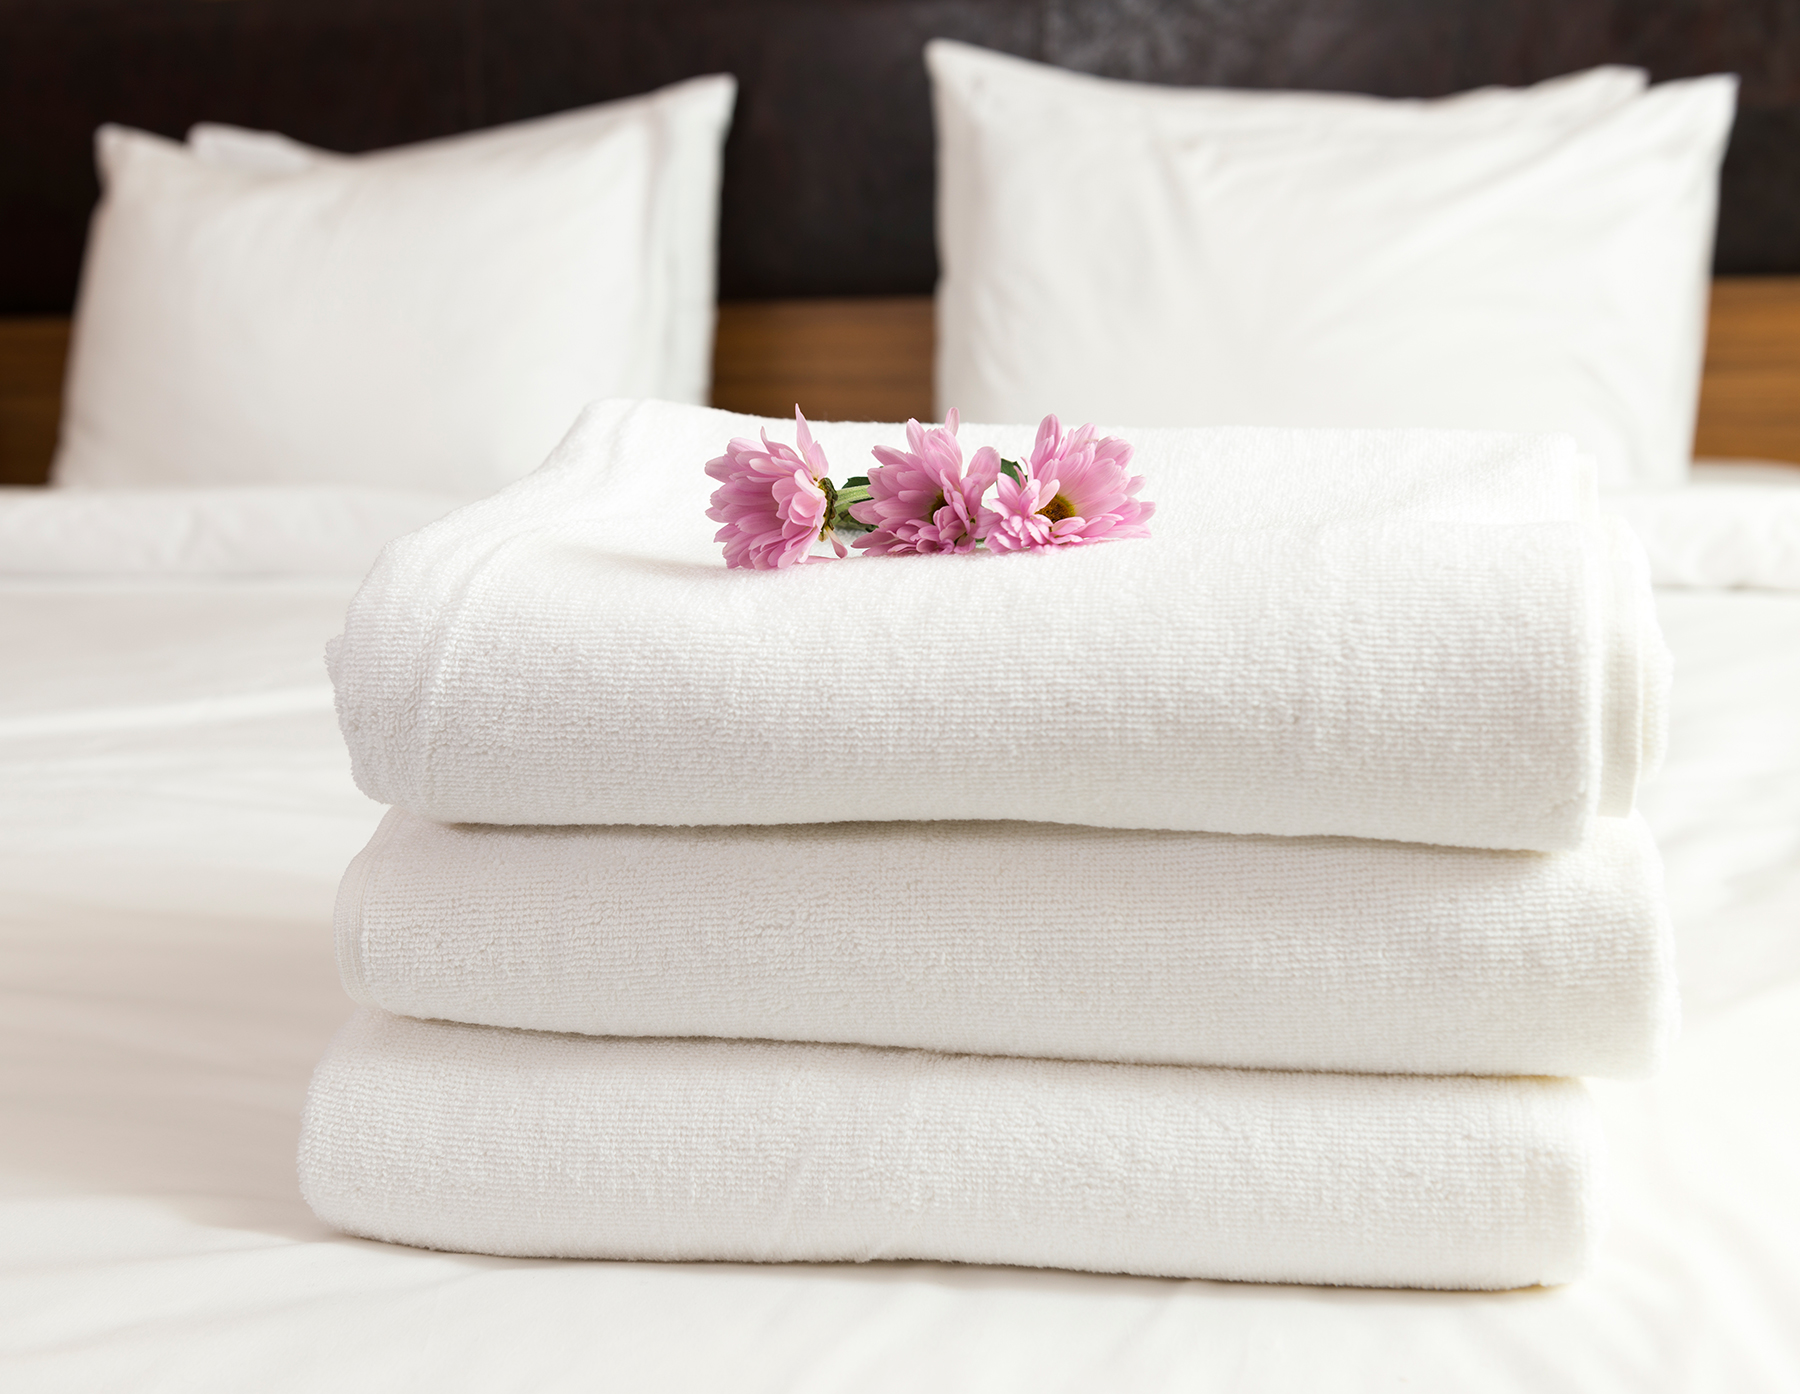 Hotel bed and towels